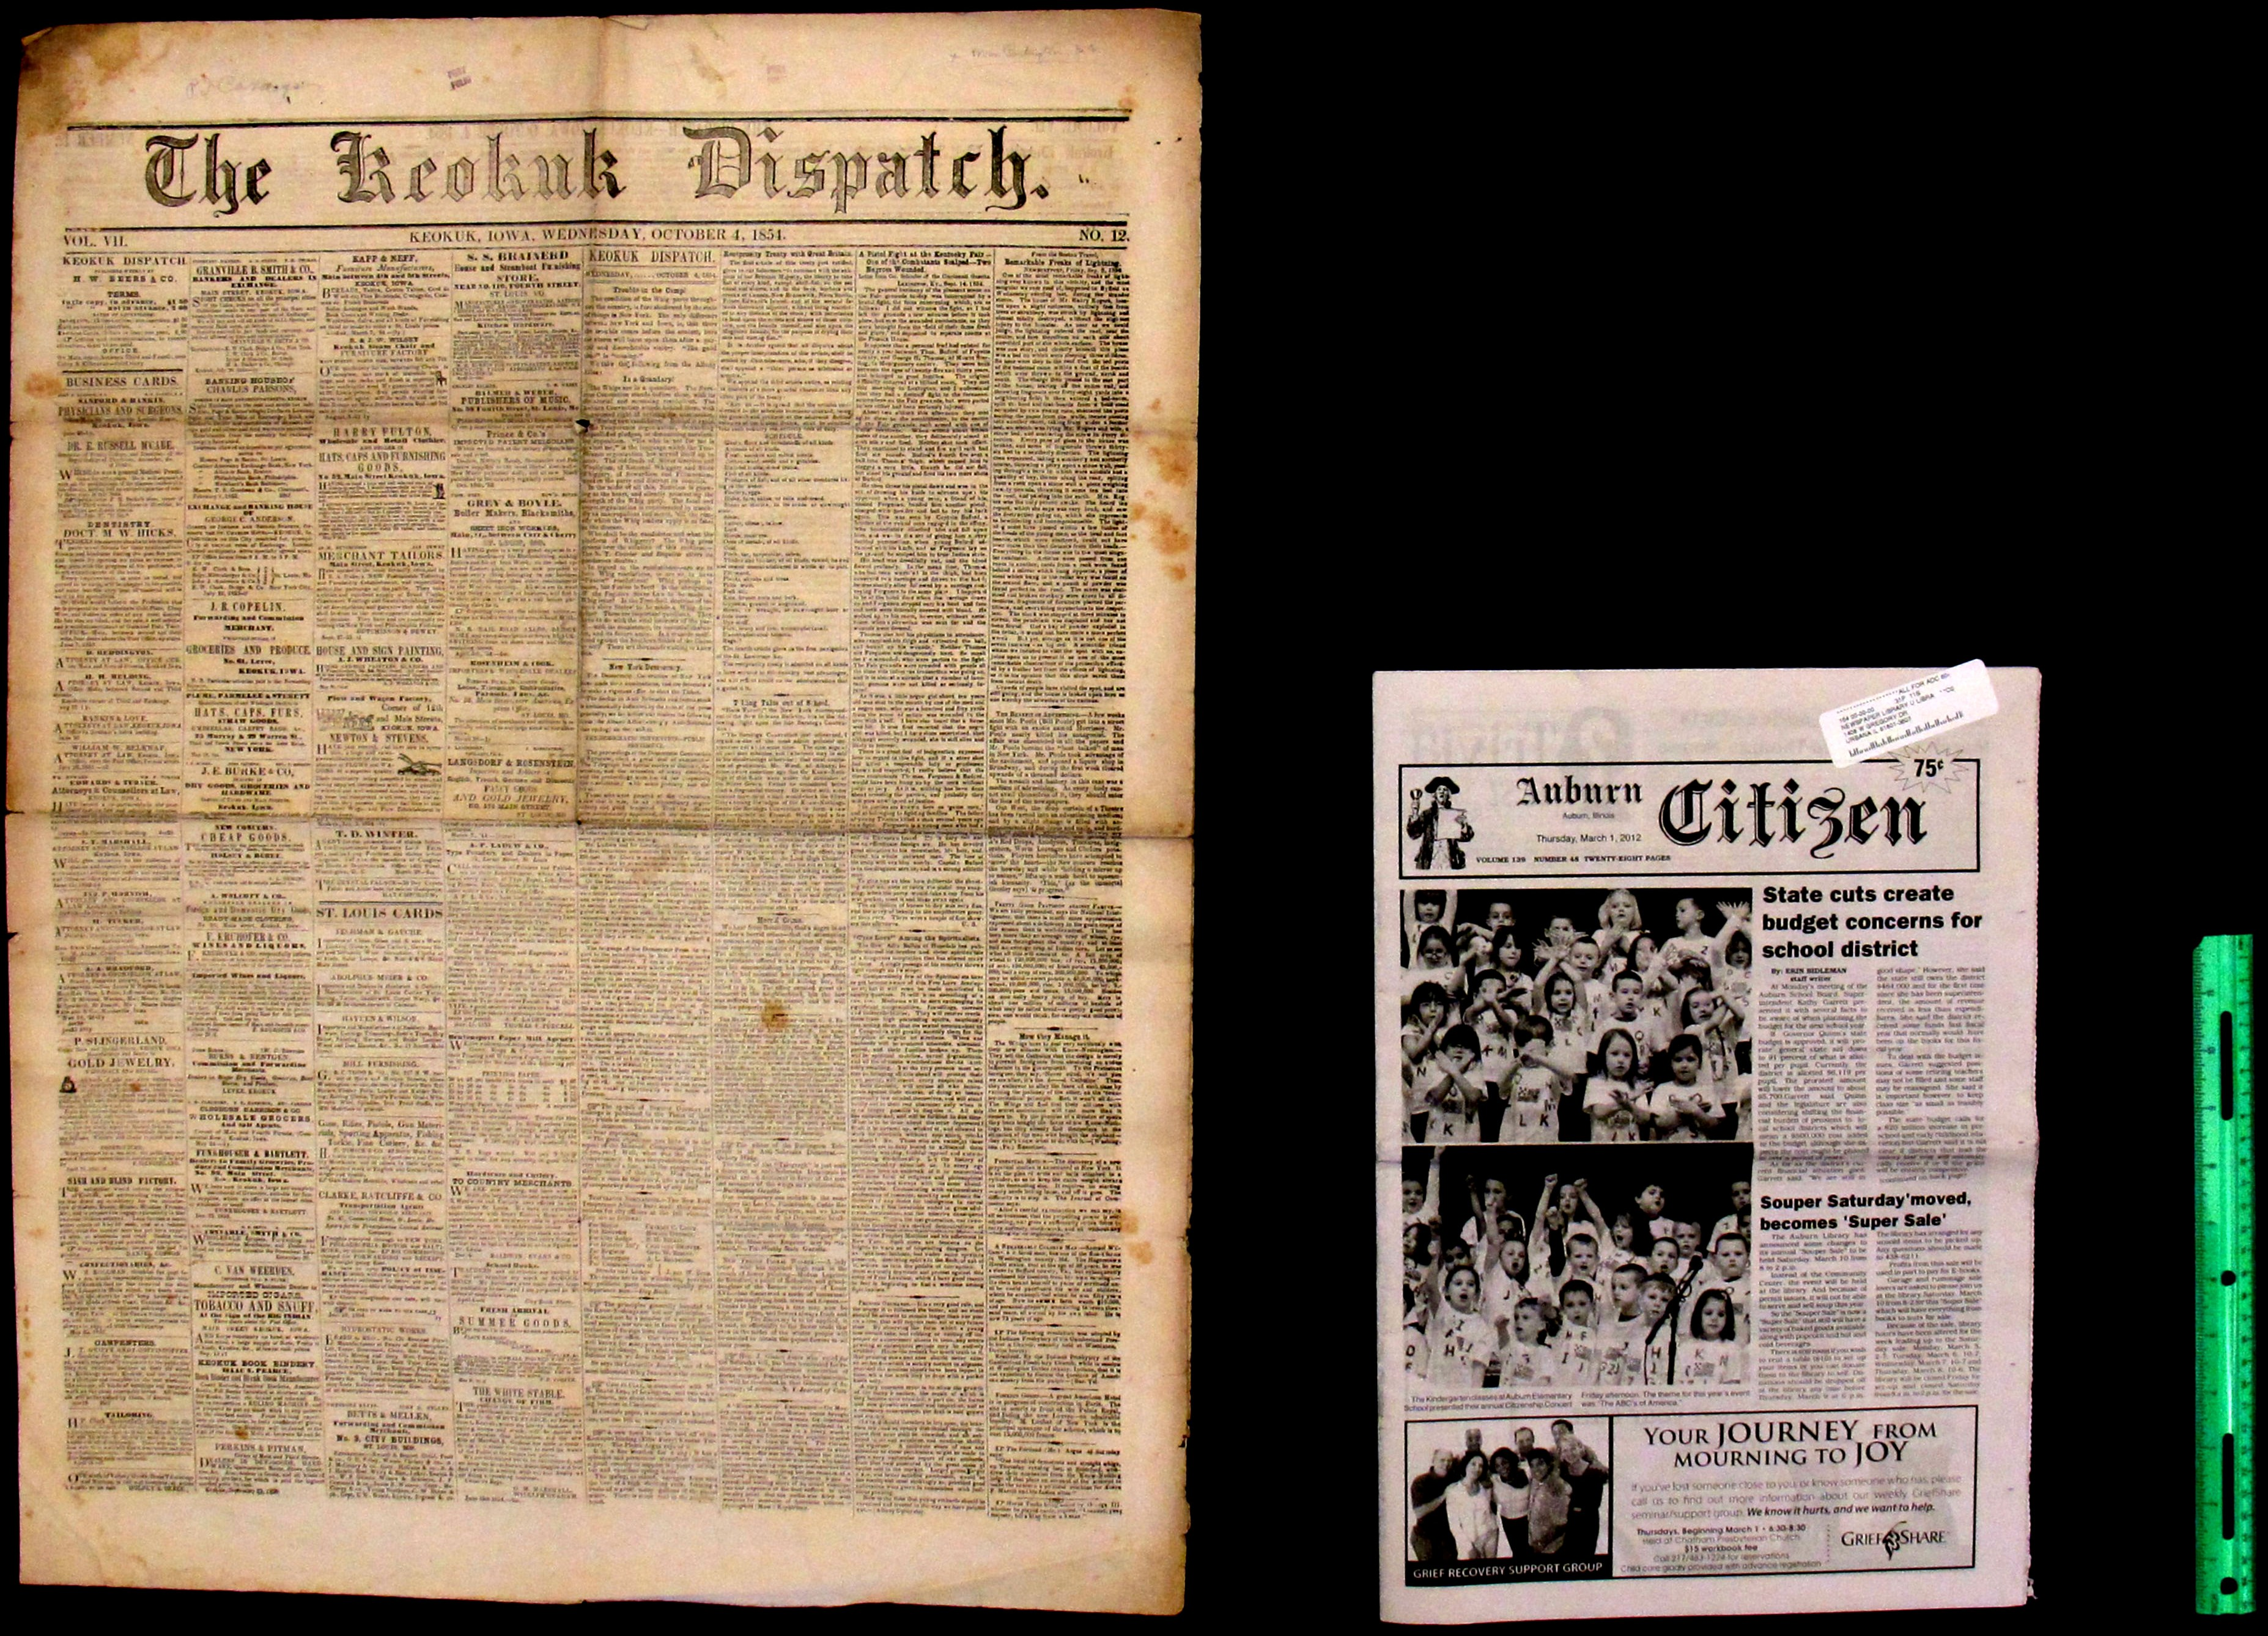 Antebellum Country Newspaper Compared With Country Newspaper from 2012